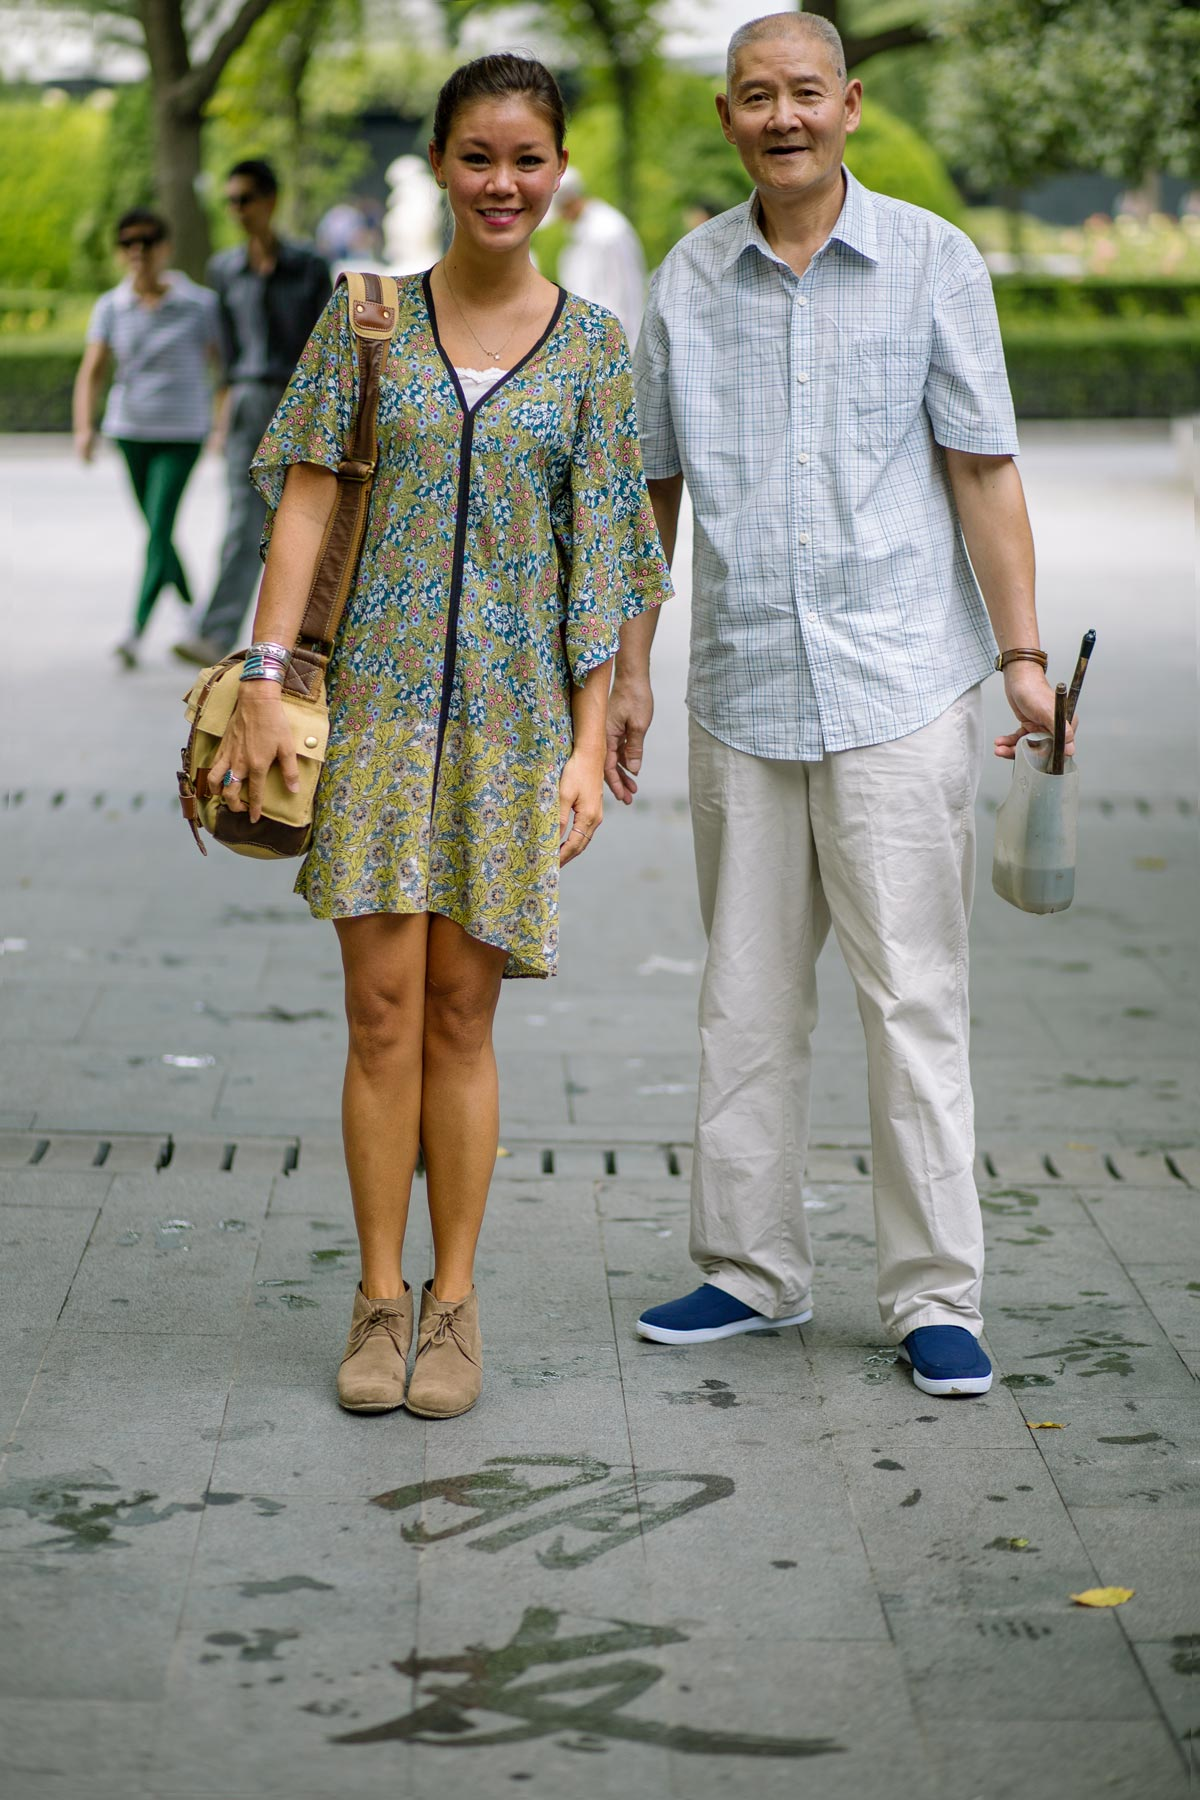 A man and woman smiling for the camera standing on the street